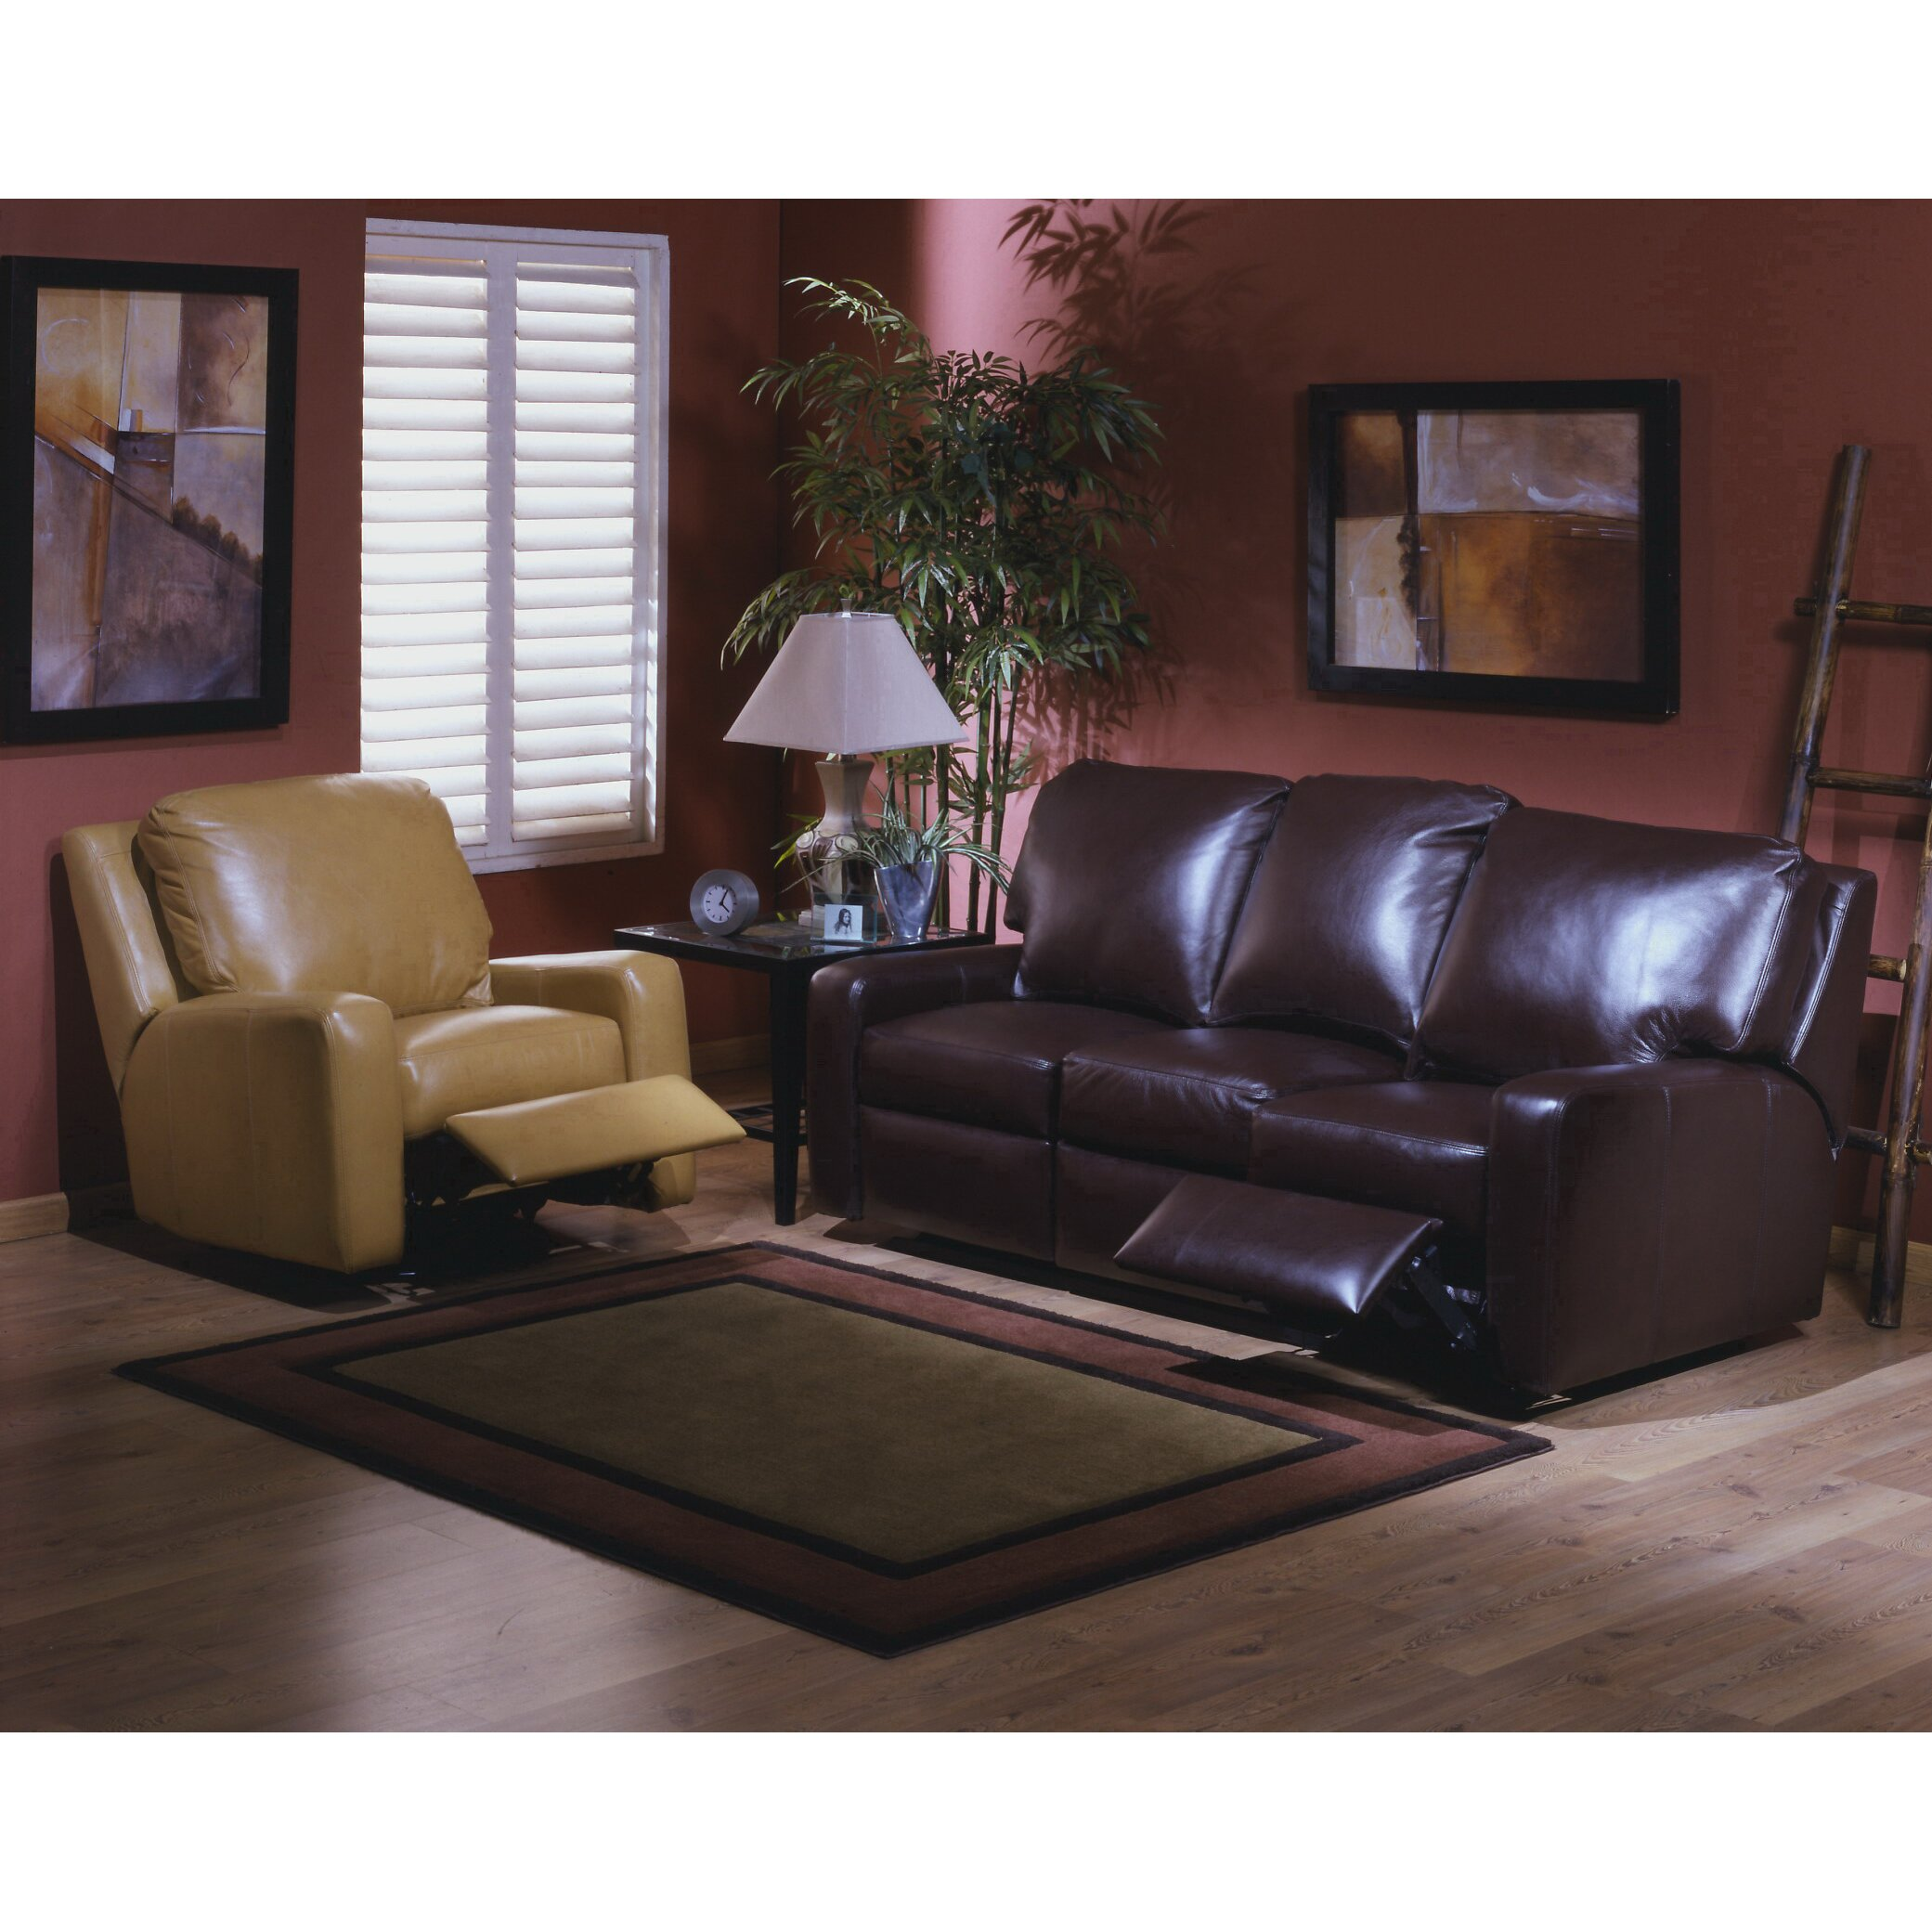 Omnia leather mirage reclining leather living room set Reclining living room furniture